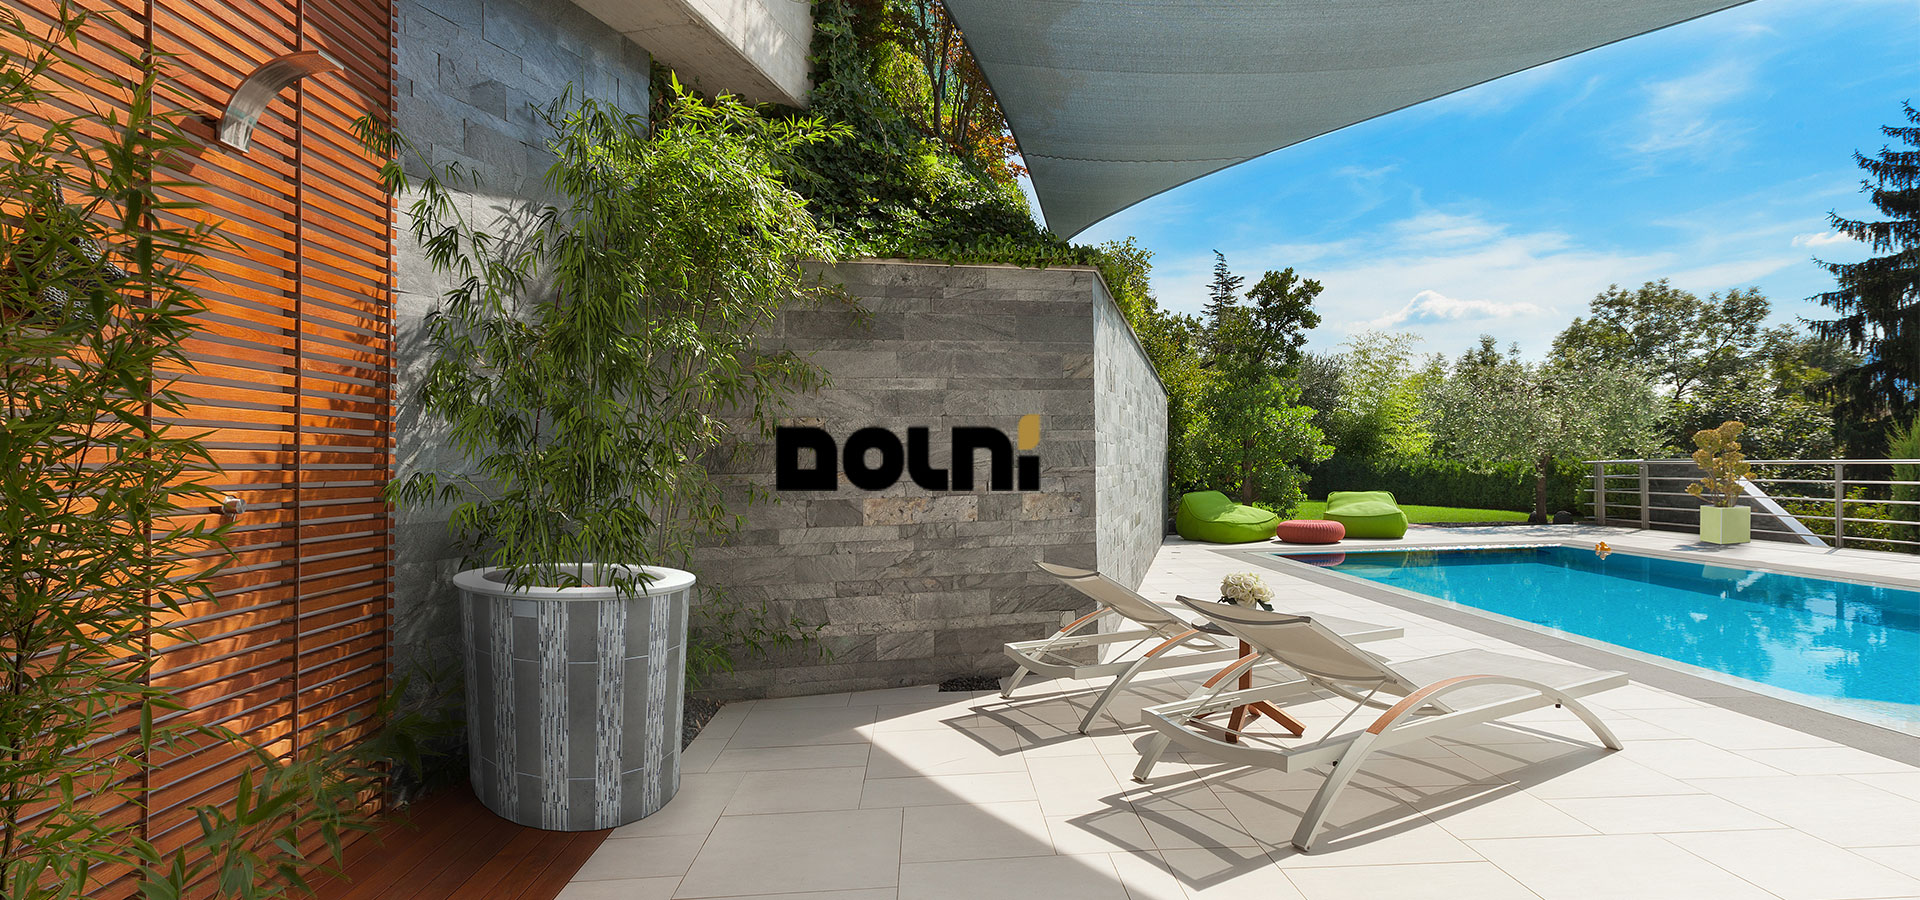 DOLNI-createur-jardinieres-luxe-realisation-Comwell